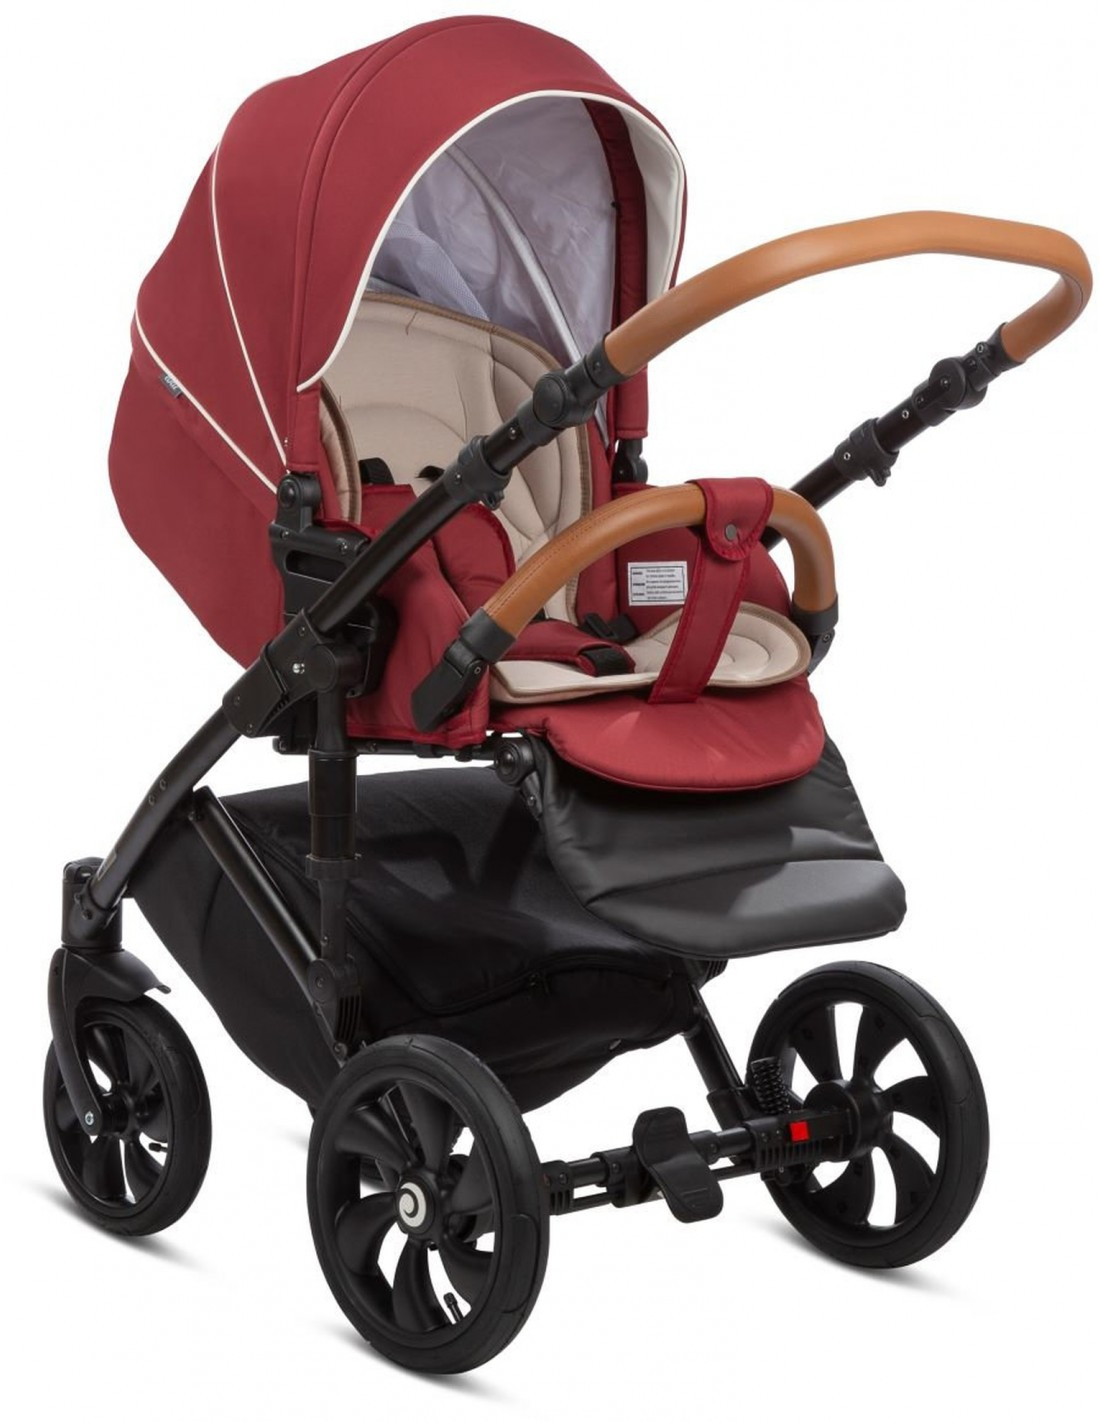 just wheel without fork holder RIKO BRANO LUXE FRONT WHEELL